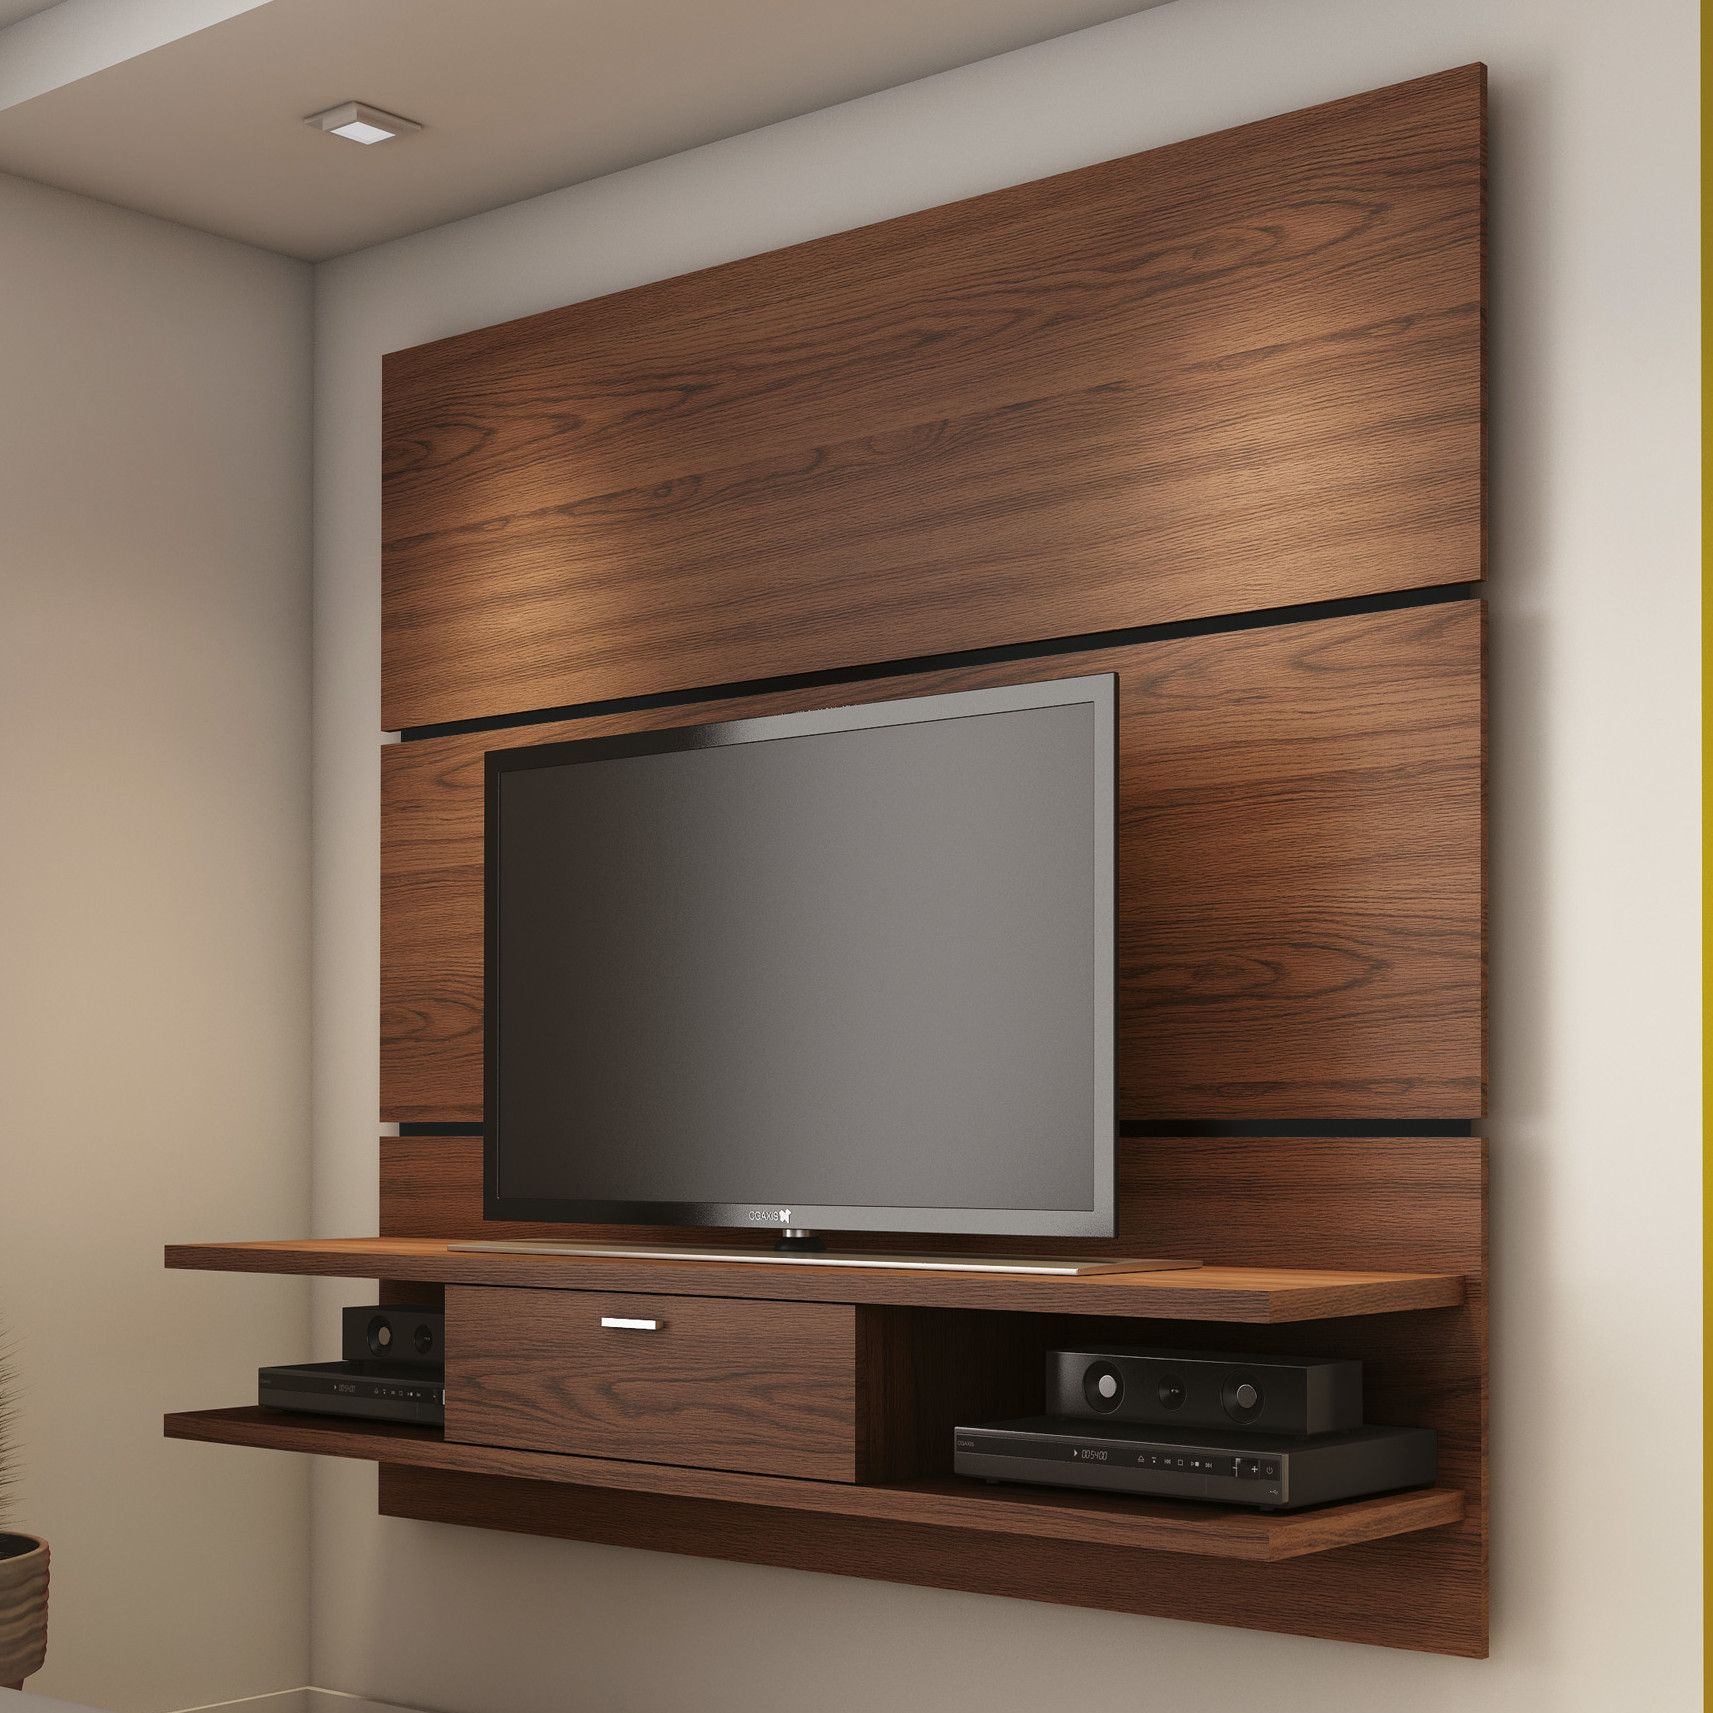 Small Bedroom Tv Unit Wooden Wall Mounted Stand For In Stylish Design Of